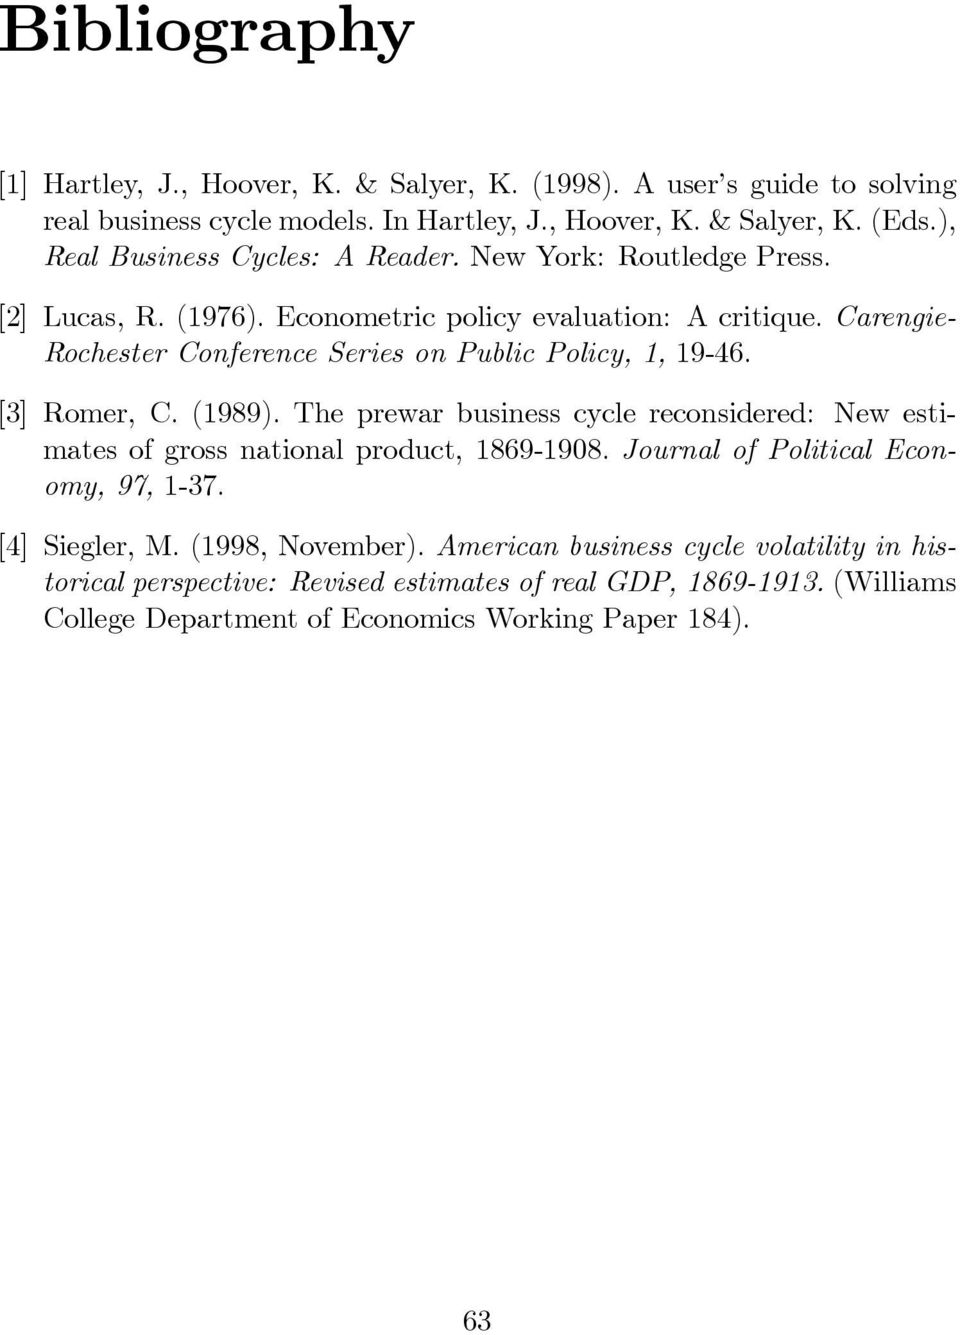 Carengie- Rochester Conference Series on Public Policy,, 9-46. [3] Romer, C. (989). The prewar business cycle reconsidered: New estimates of gross national product, 869-908.